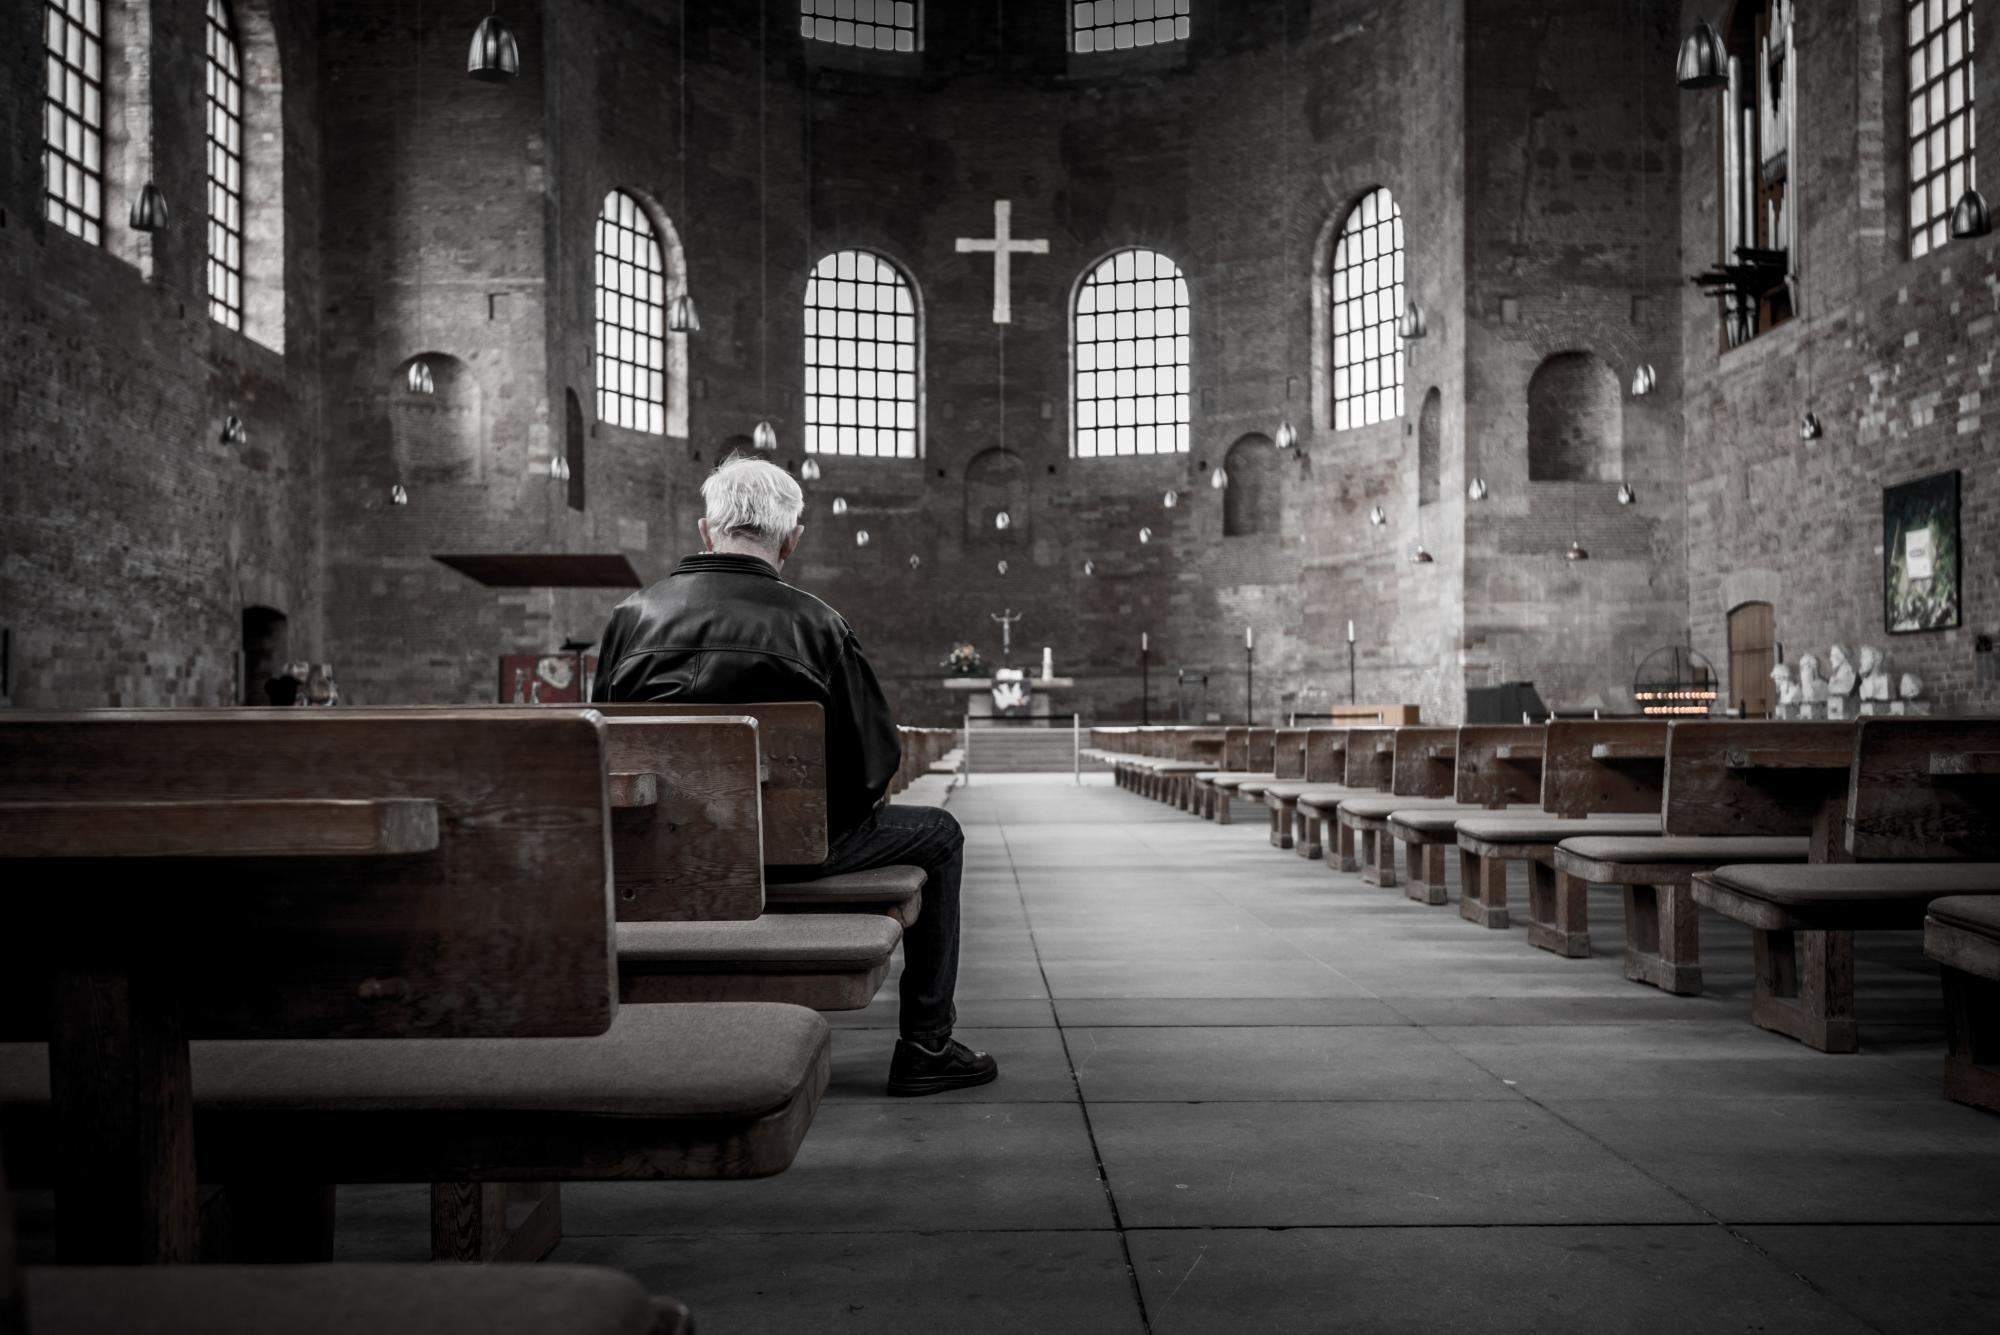 man with back to camera, sitting in a church pew